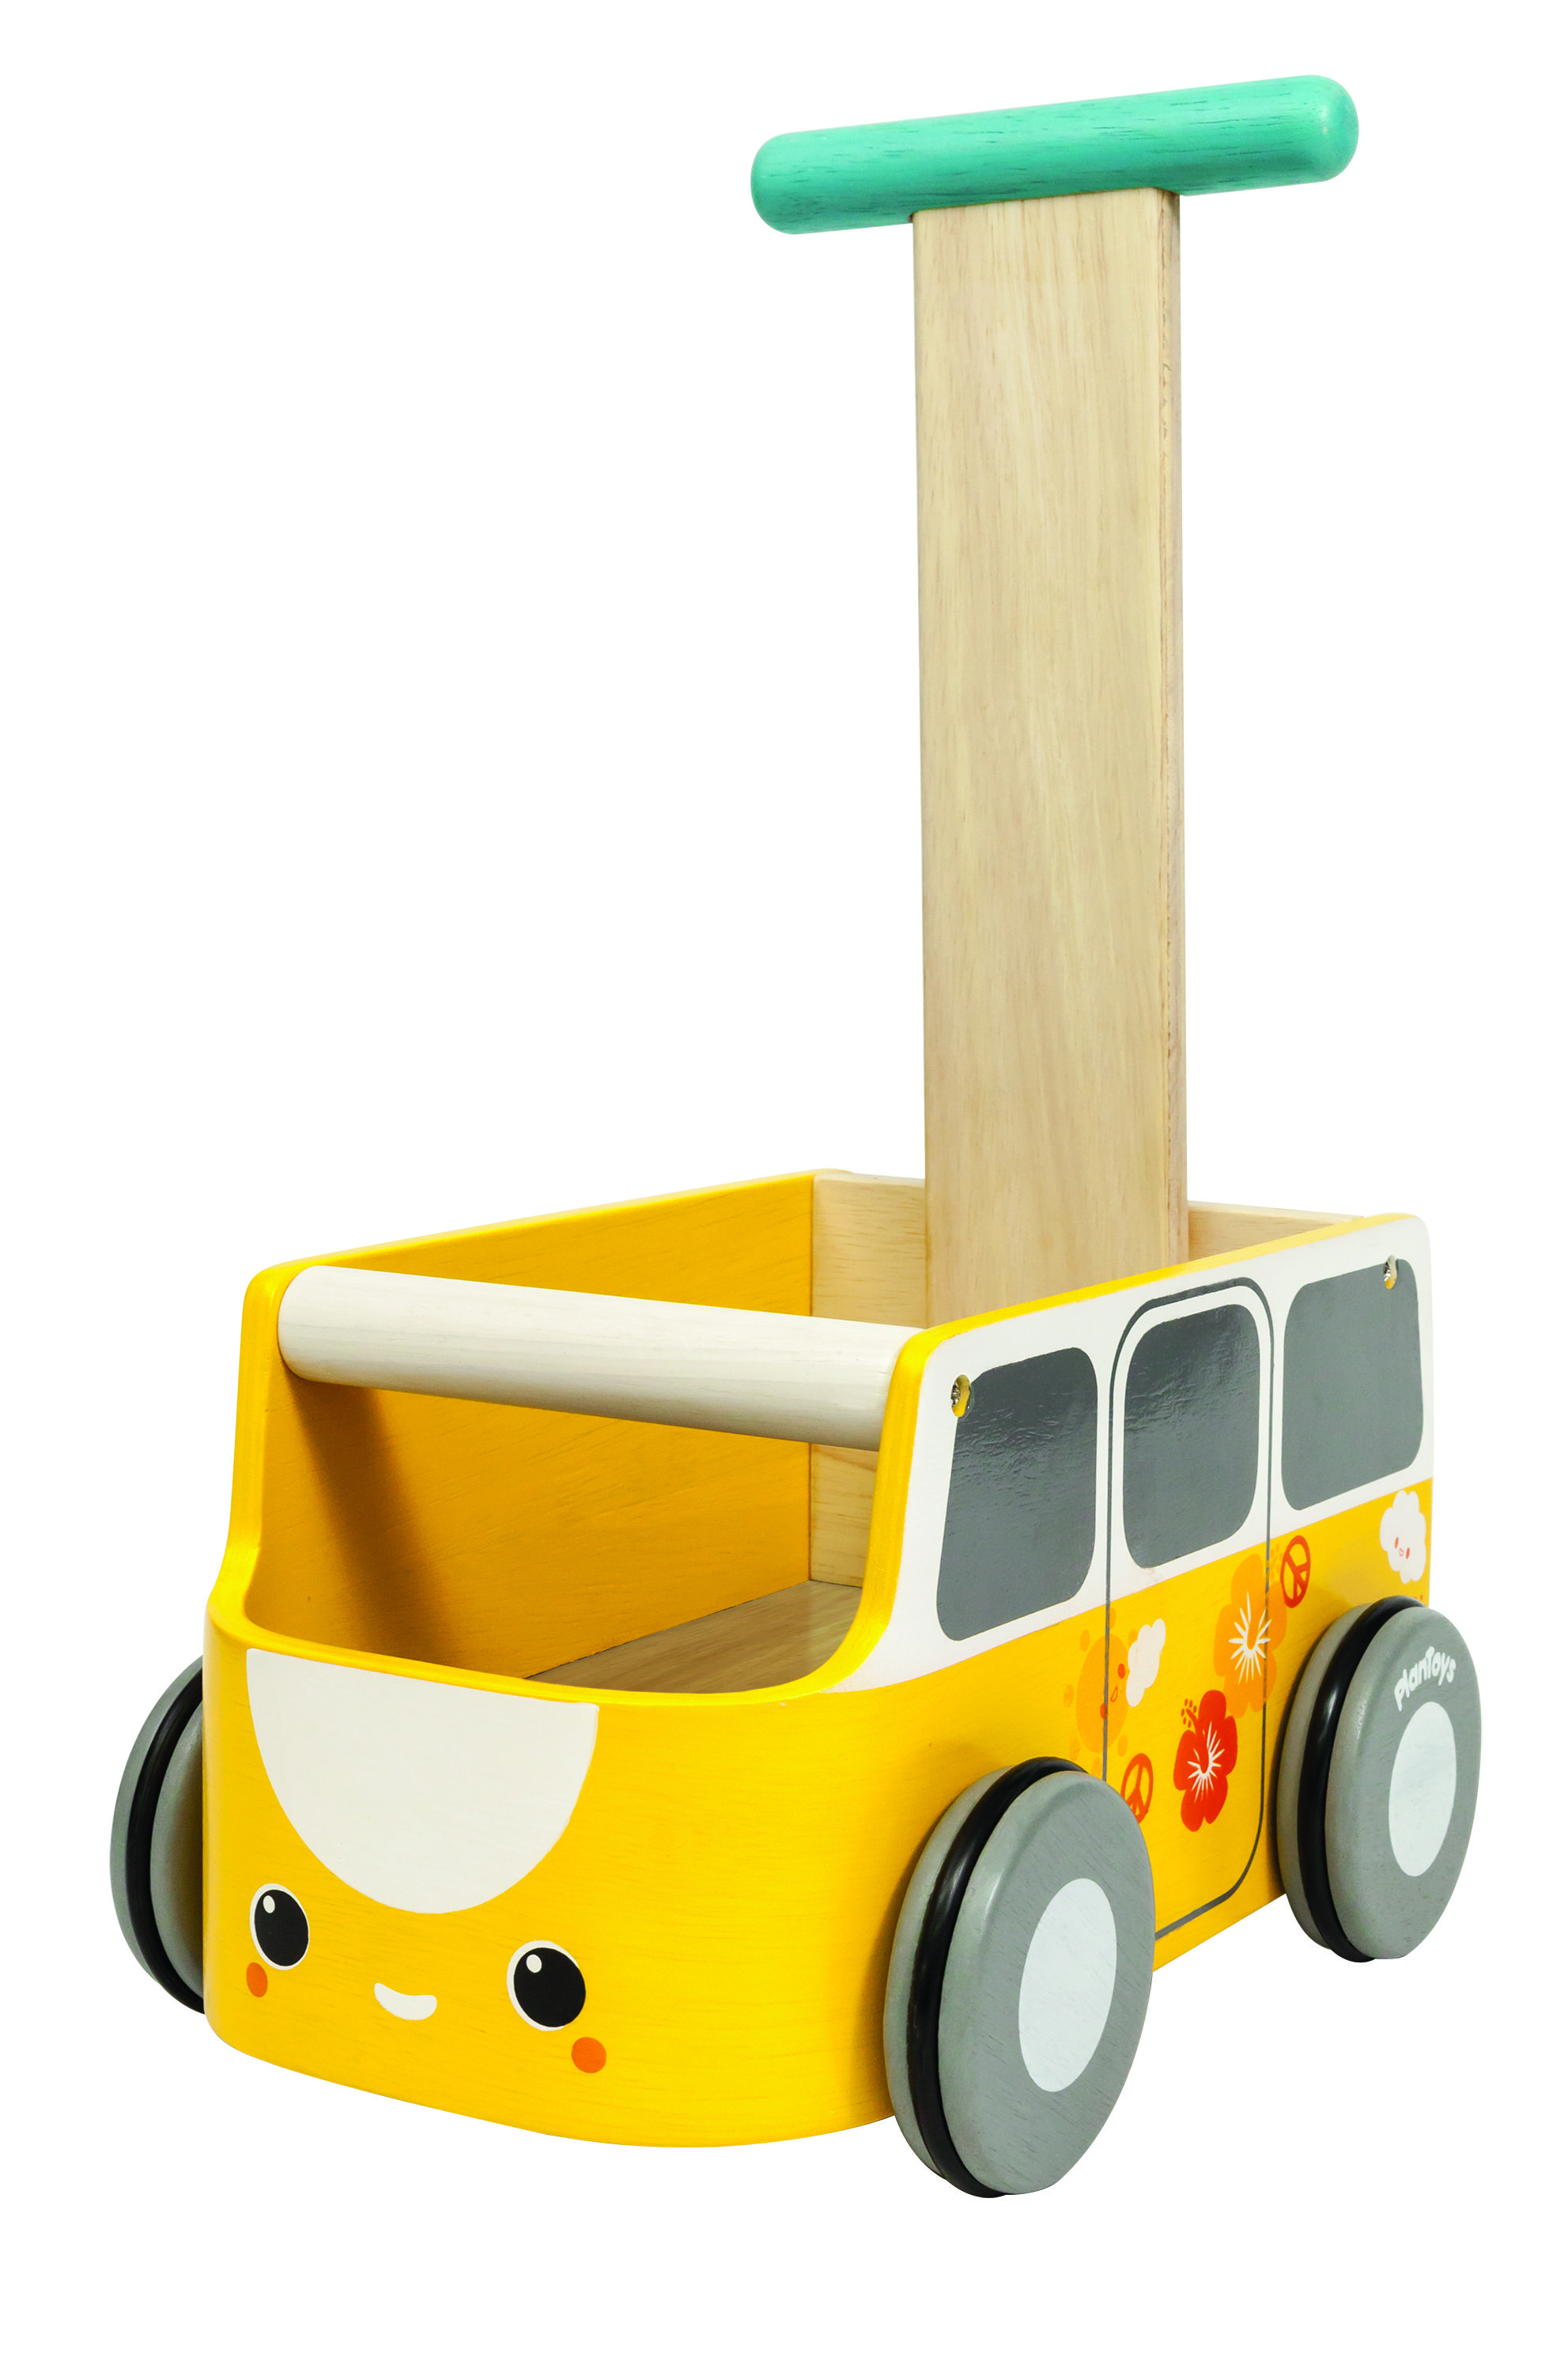 This walker is a van and could be used for storage for other little toys too. - See more at: http://usa.plantoys.com/product/van-walker-yellow/#sthash.r9SkLiuL.dpuf